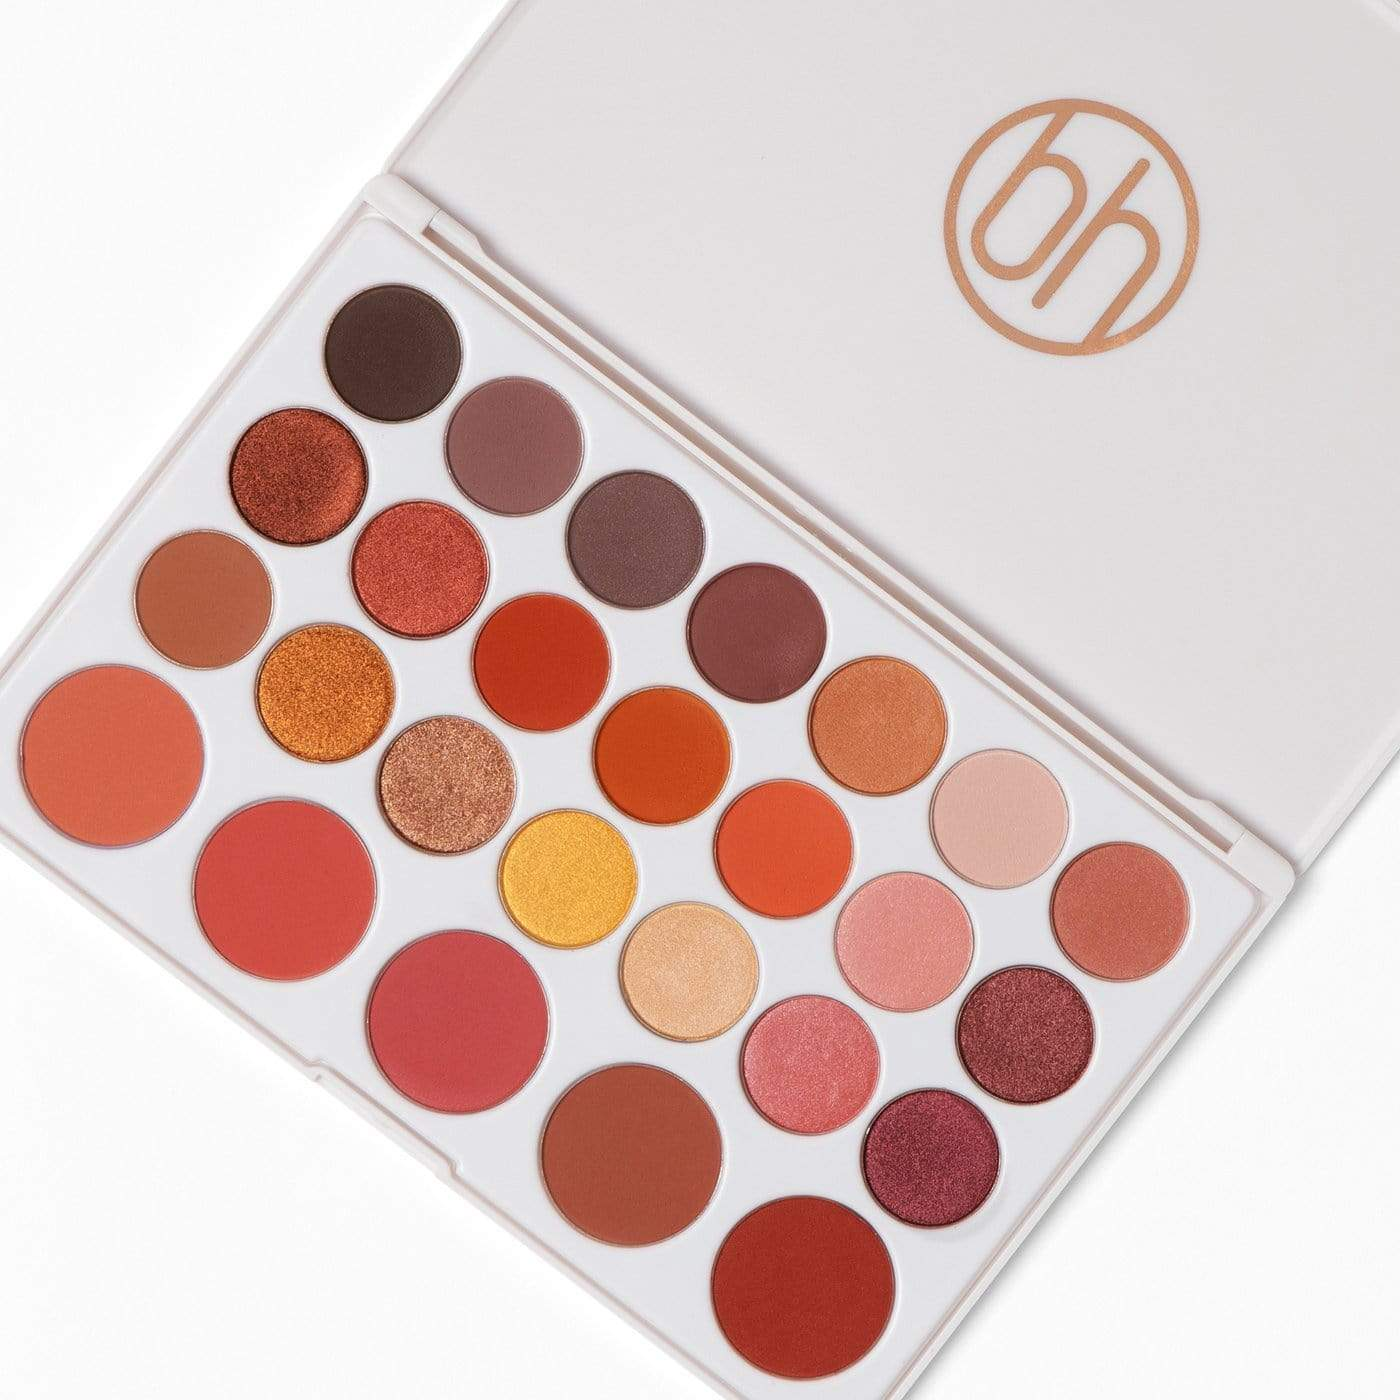 BH Cosmetics eyeshadow palette BH COSMETICS Nouveau Neutrals 26 Color Shadow & Blush Palette